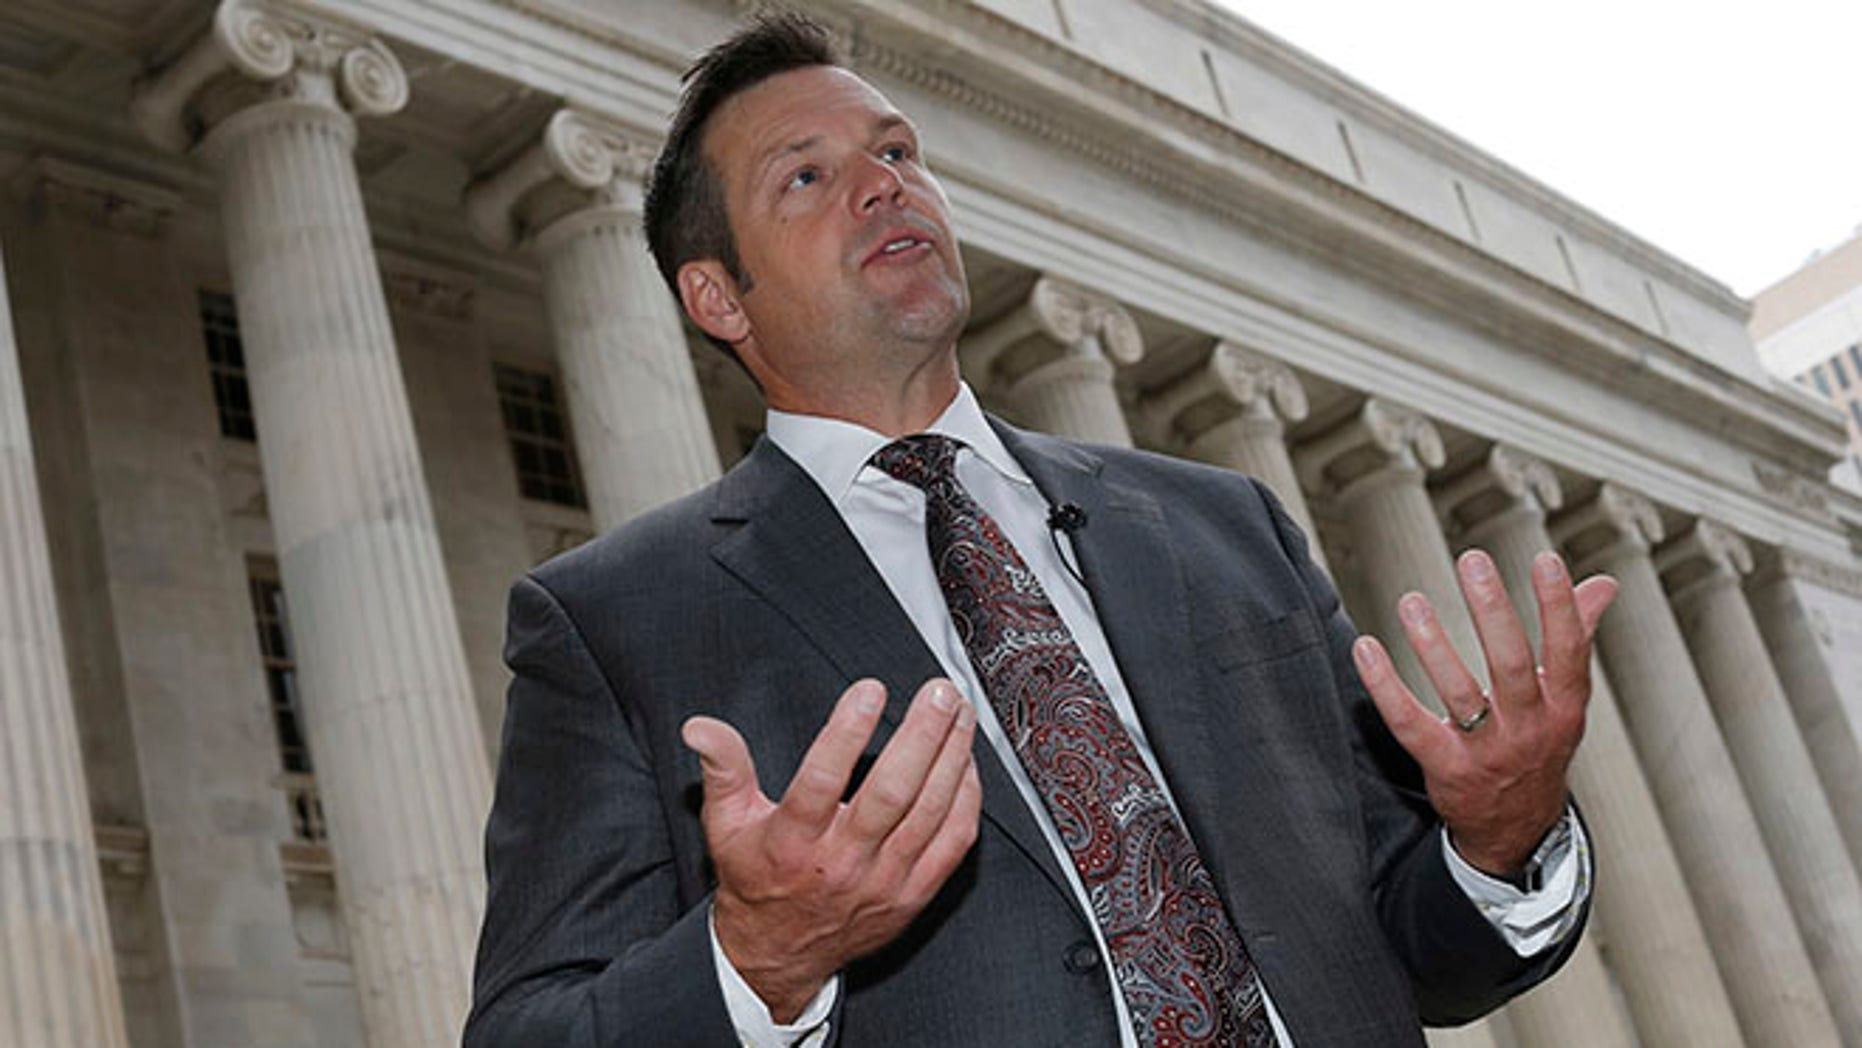 Kansas Secretary of State Kris Kobach on Tuesday, Aug. 23, 2016 in Denver.